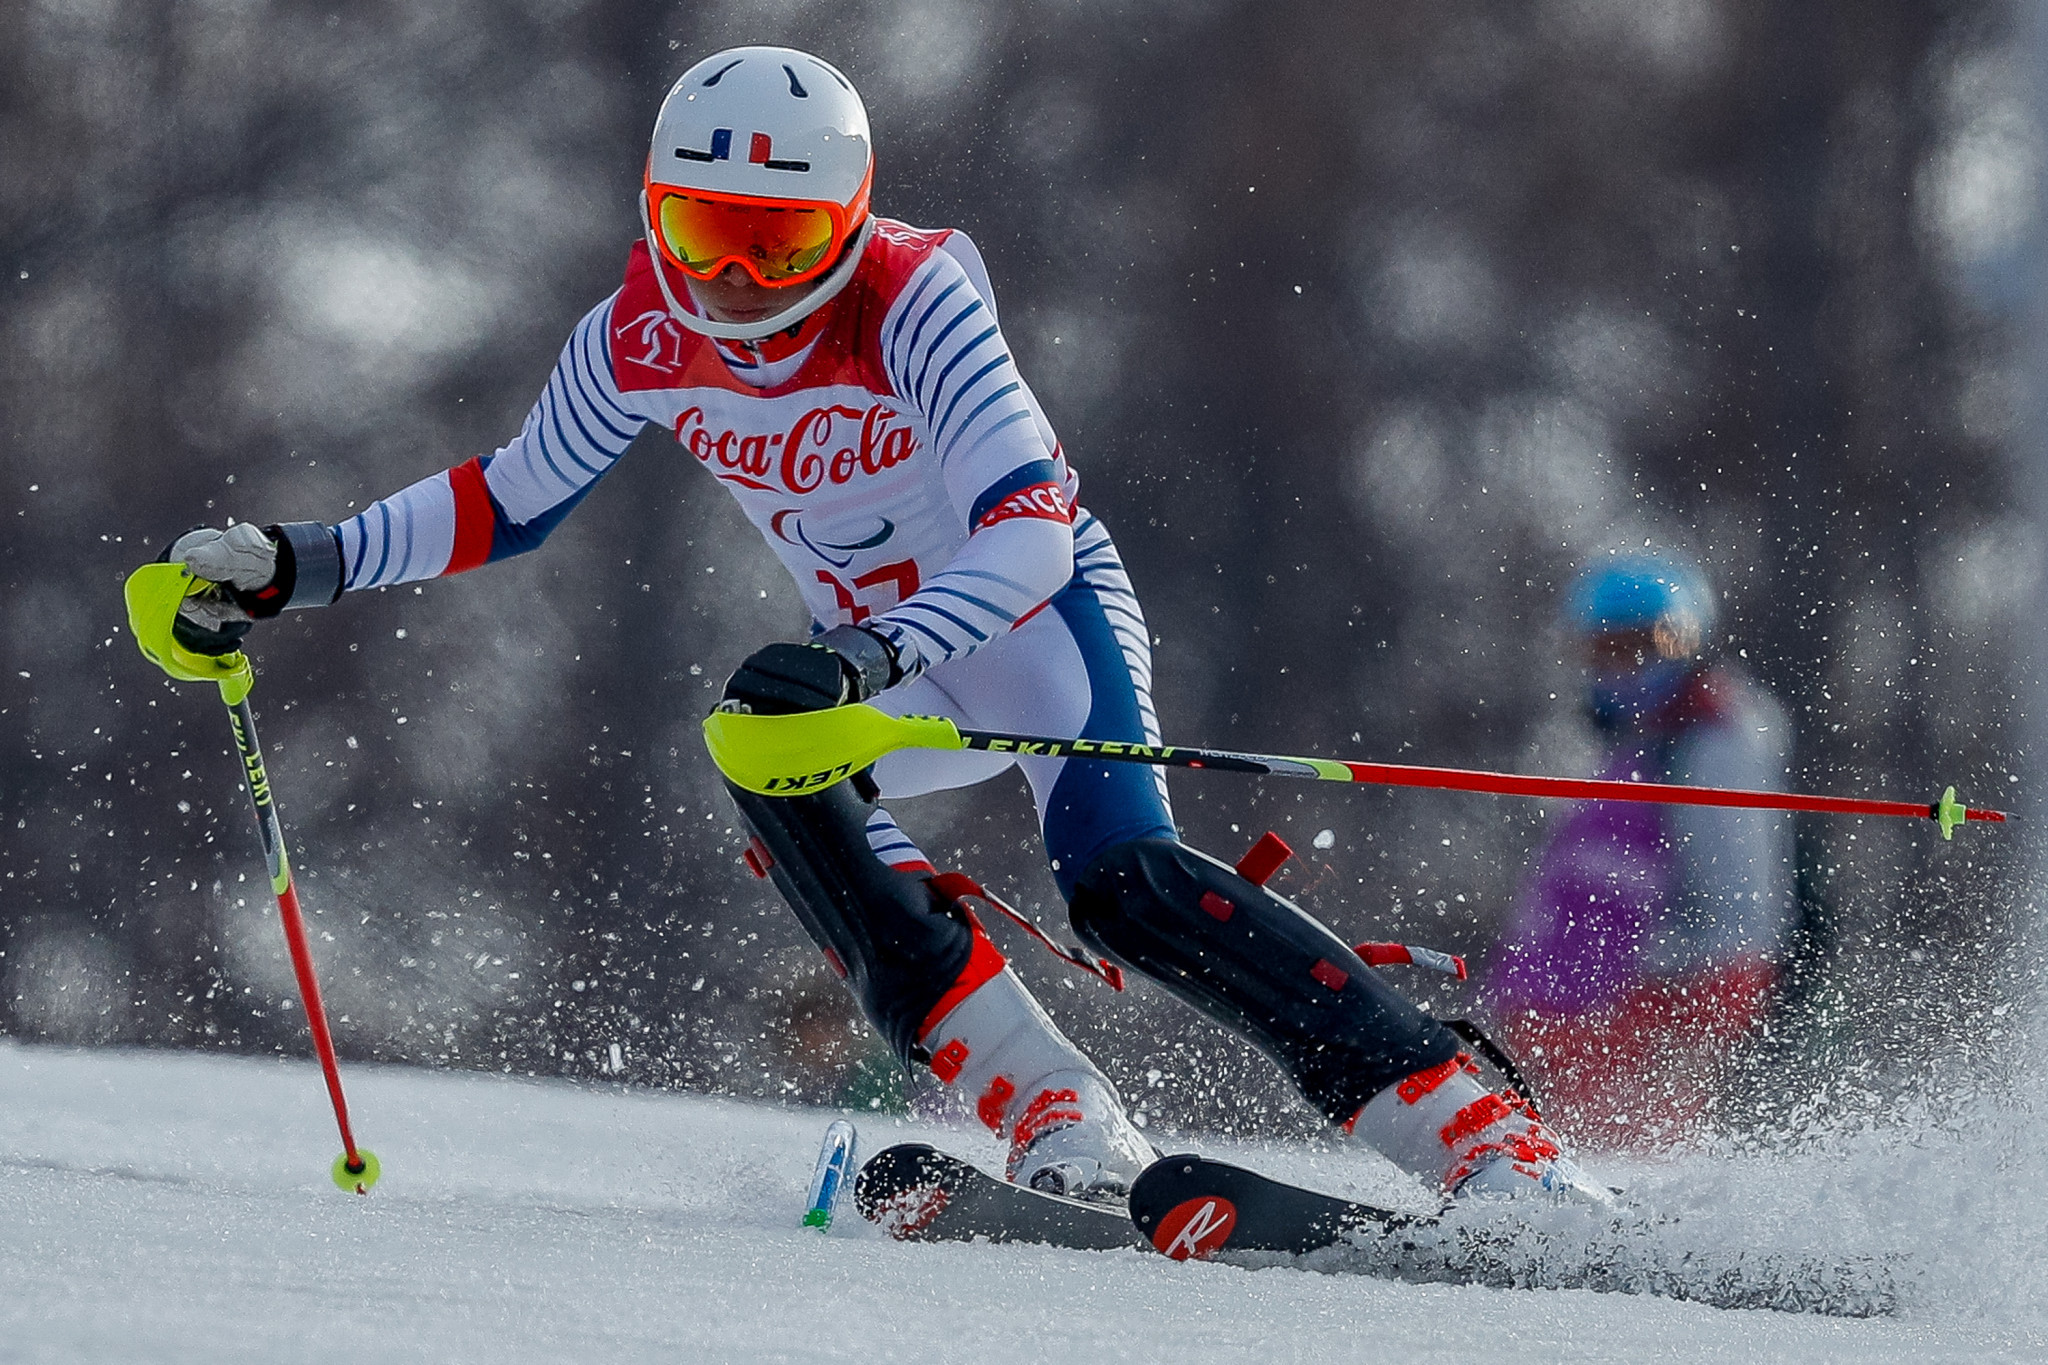 Double delight for Bauchet at World Para Alpine Skiing Championships